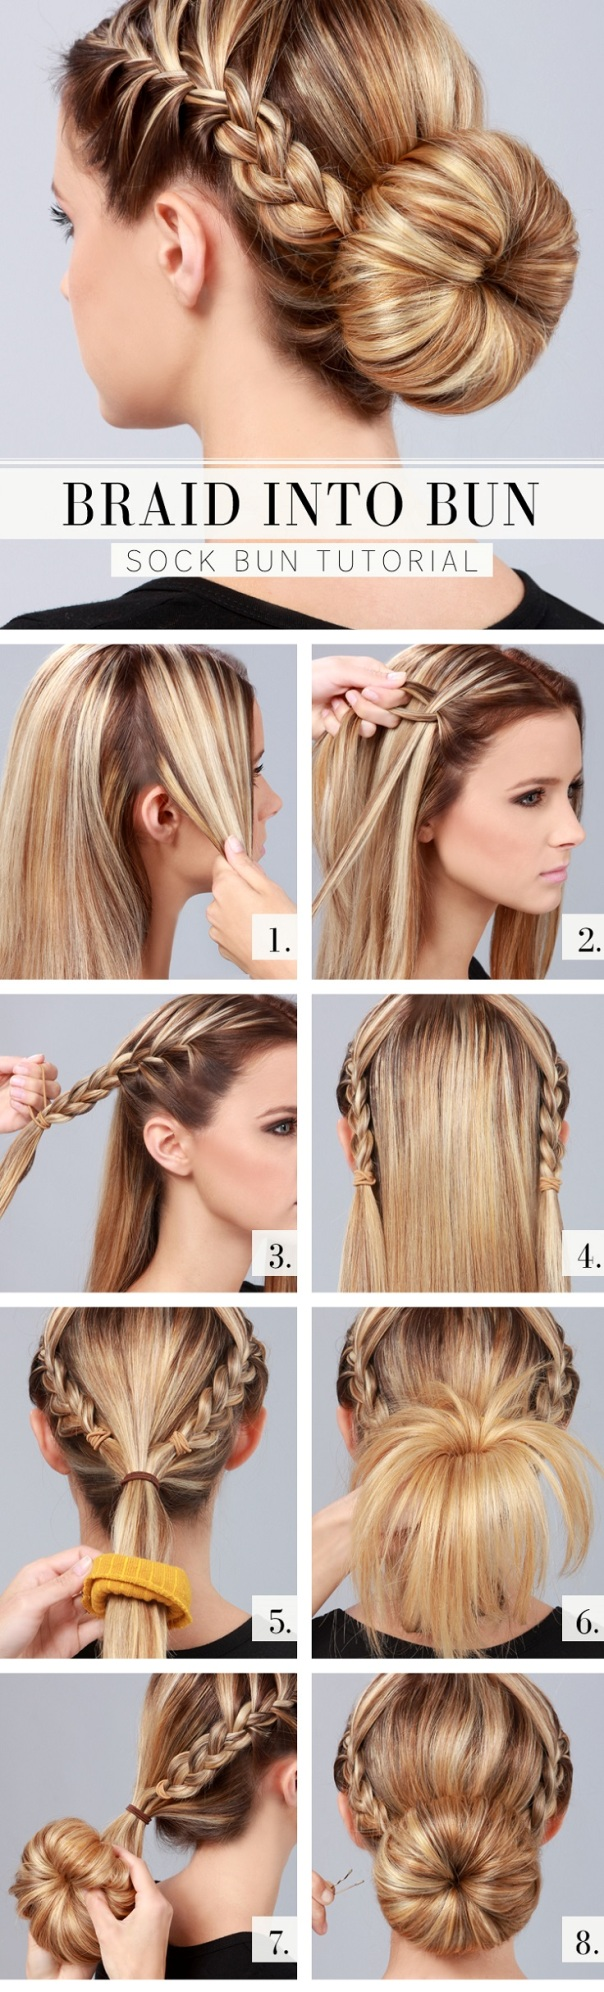 hairstyles_new_year8